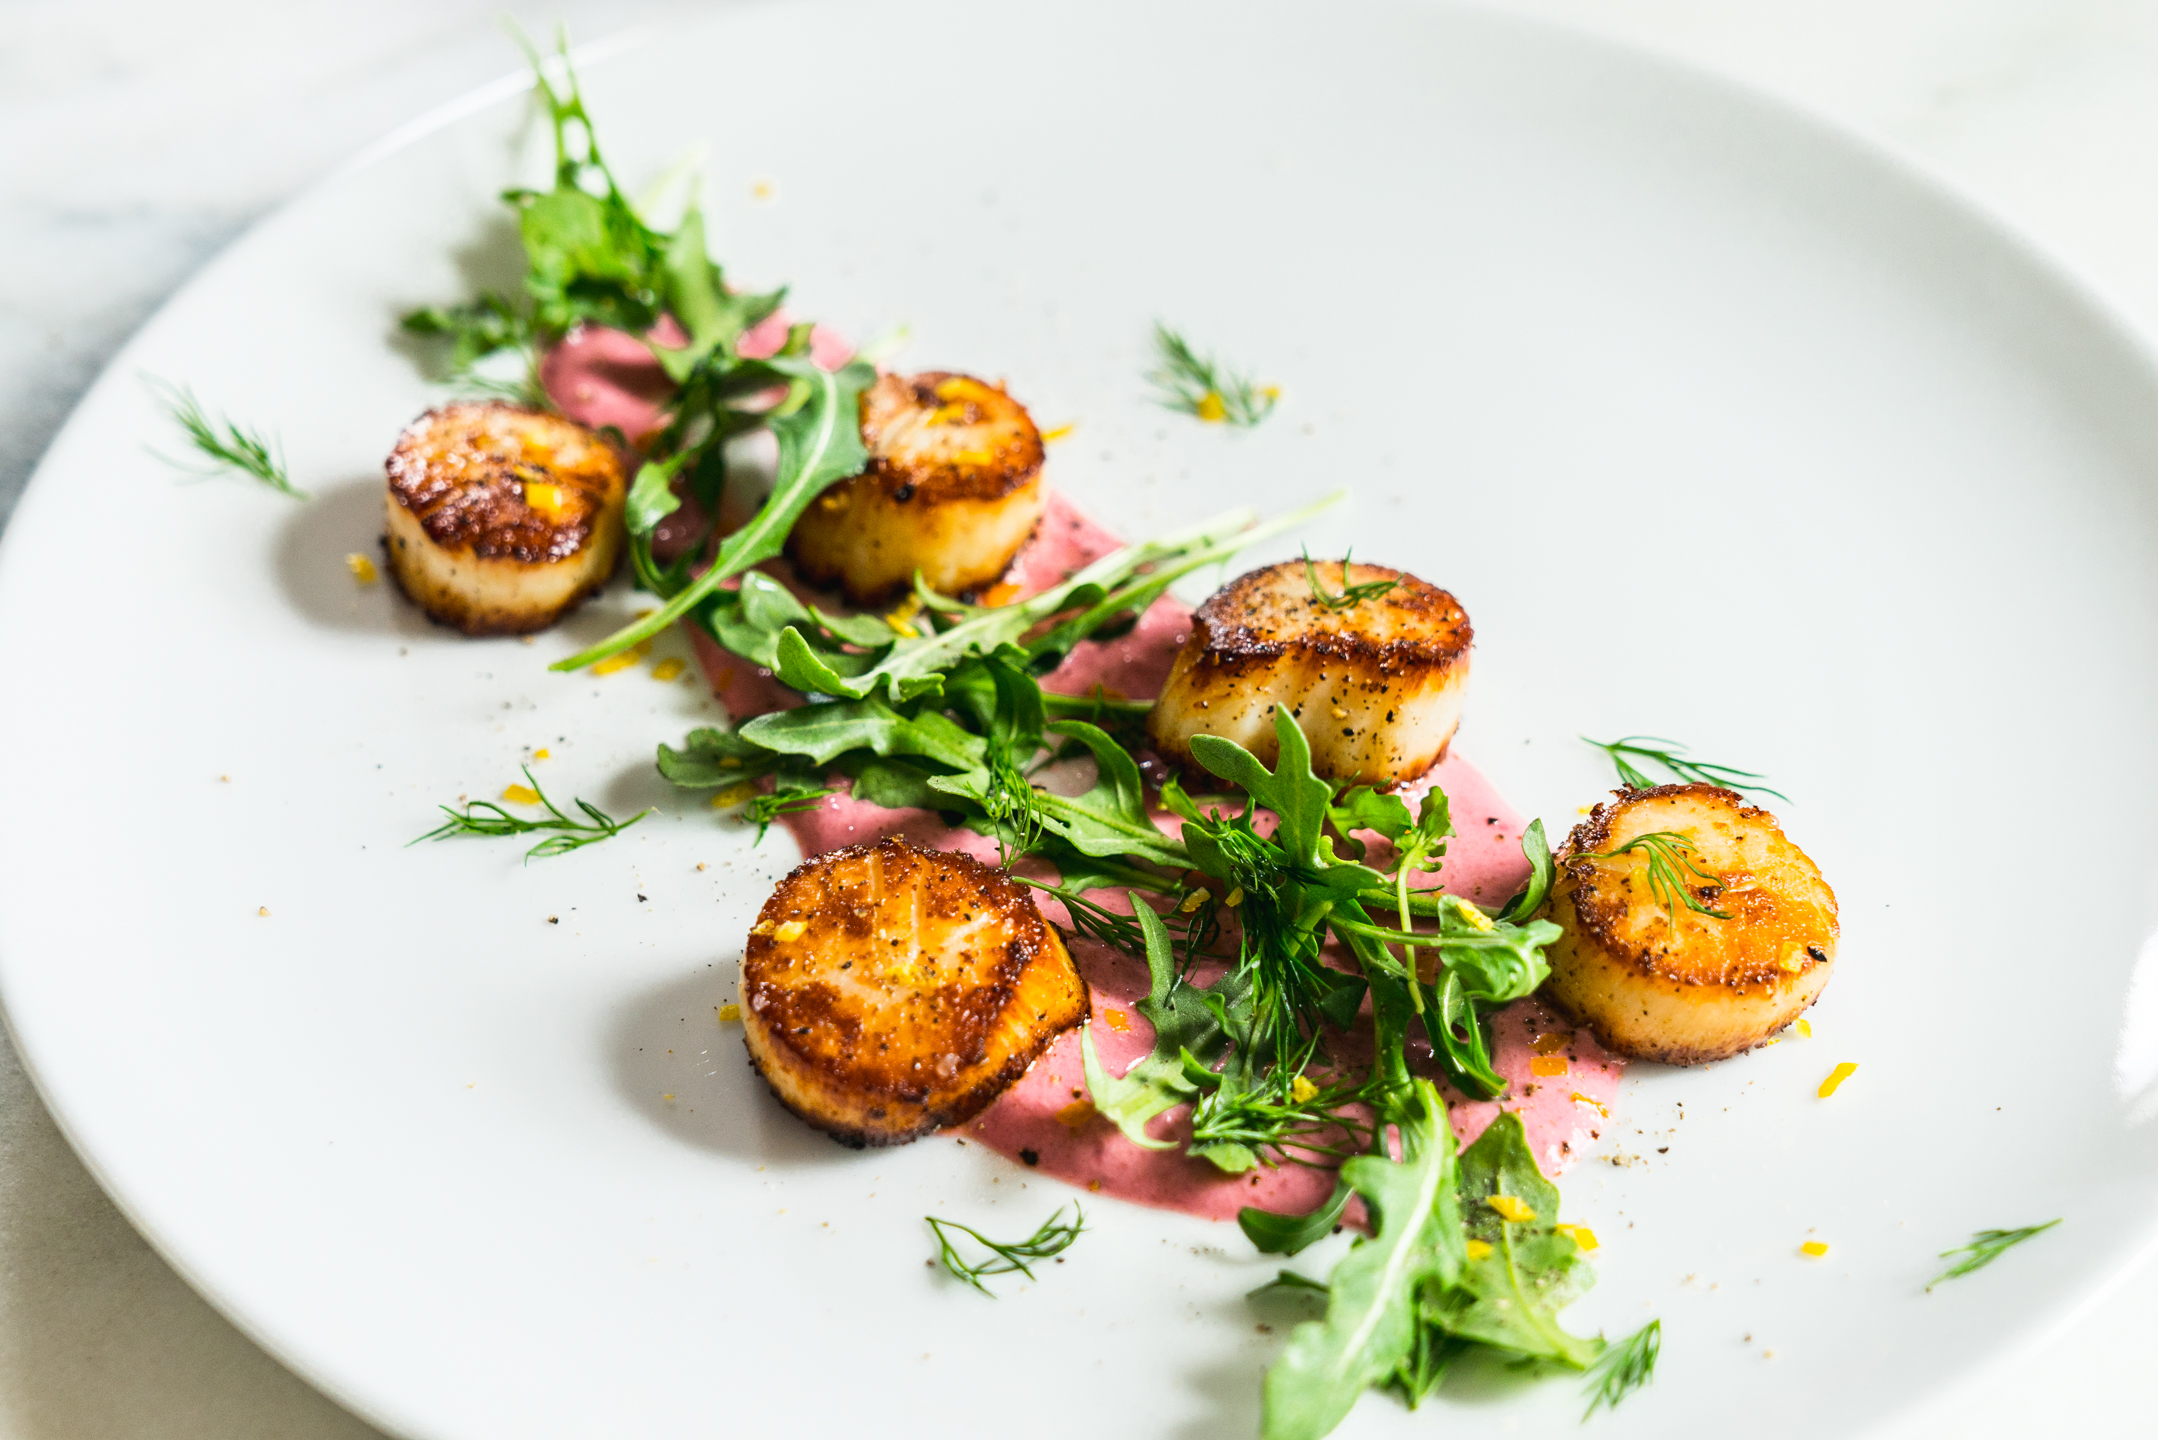 Pan Seared Scallops with Creamy Lemon Beet Purée